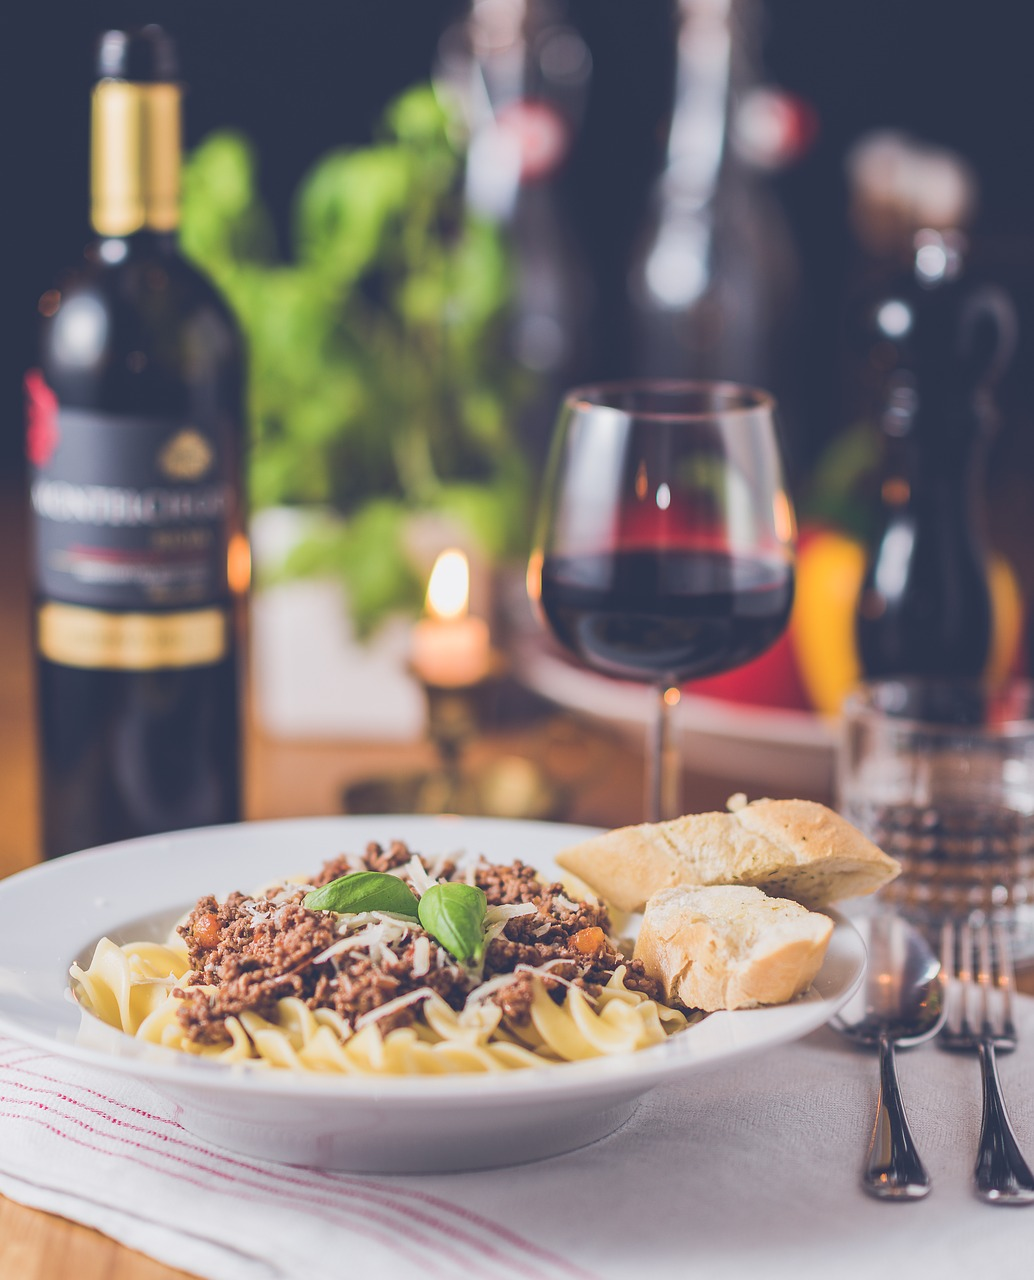 Choosing The Right Snack and Wine Combination